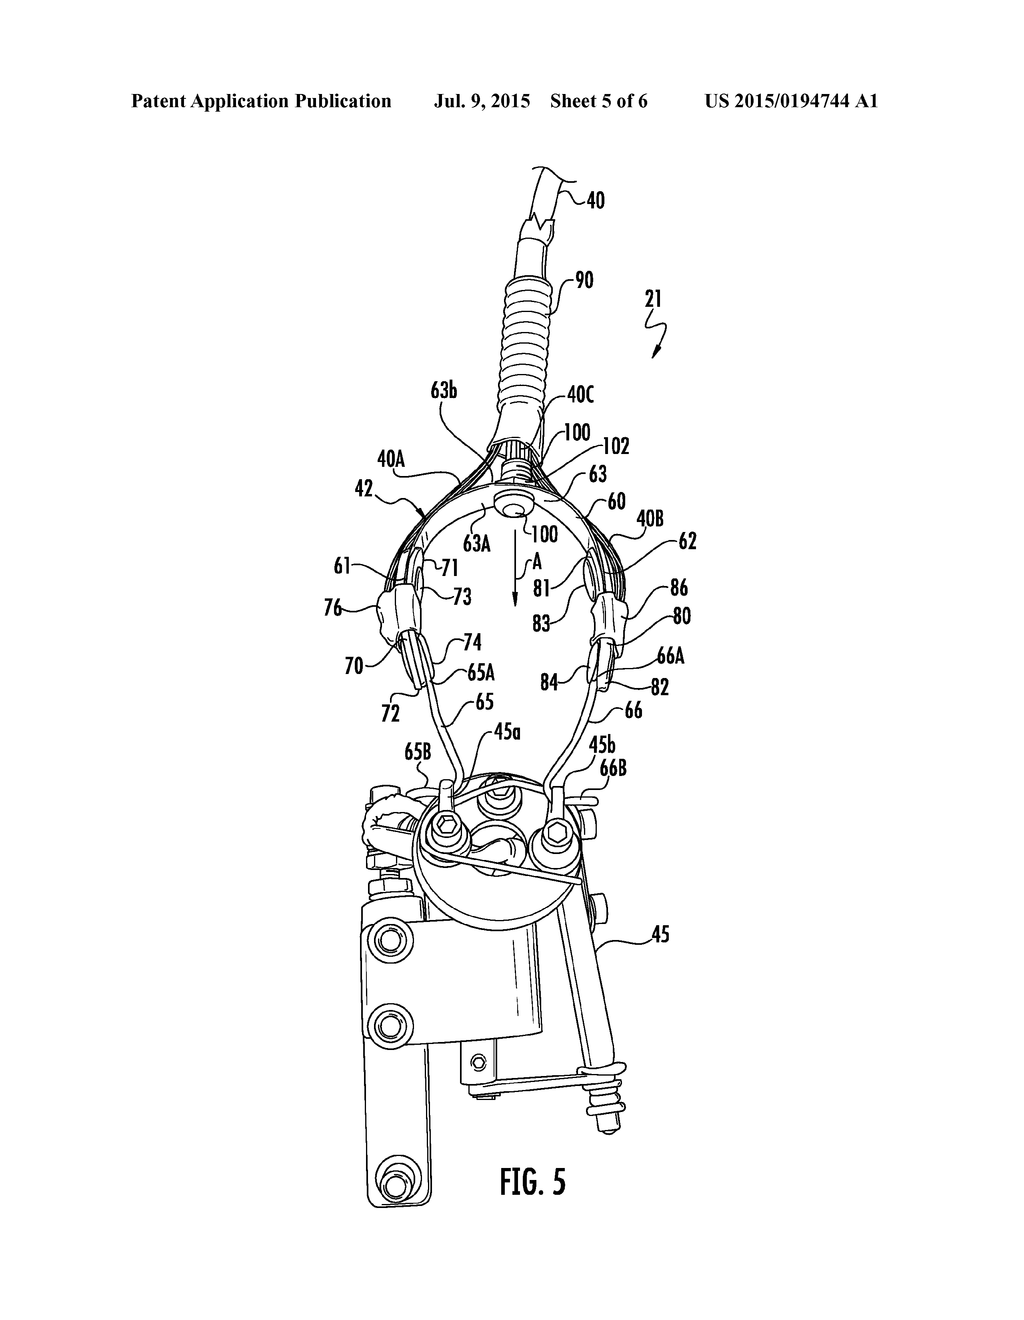 hight resolution of tattooing apparatus and clip cord assembly for electrically connecting a power supply to a tattoo machine diagram schematic and image 06